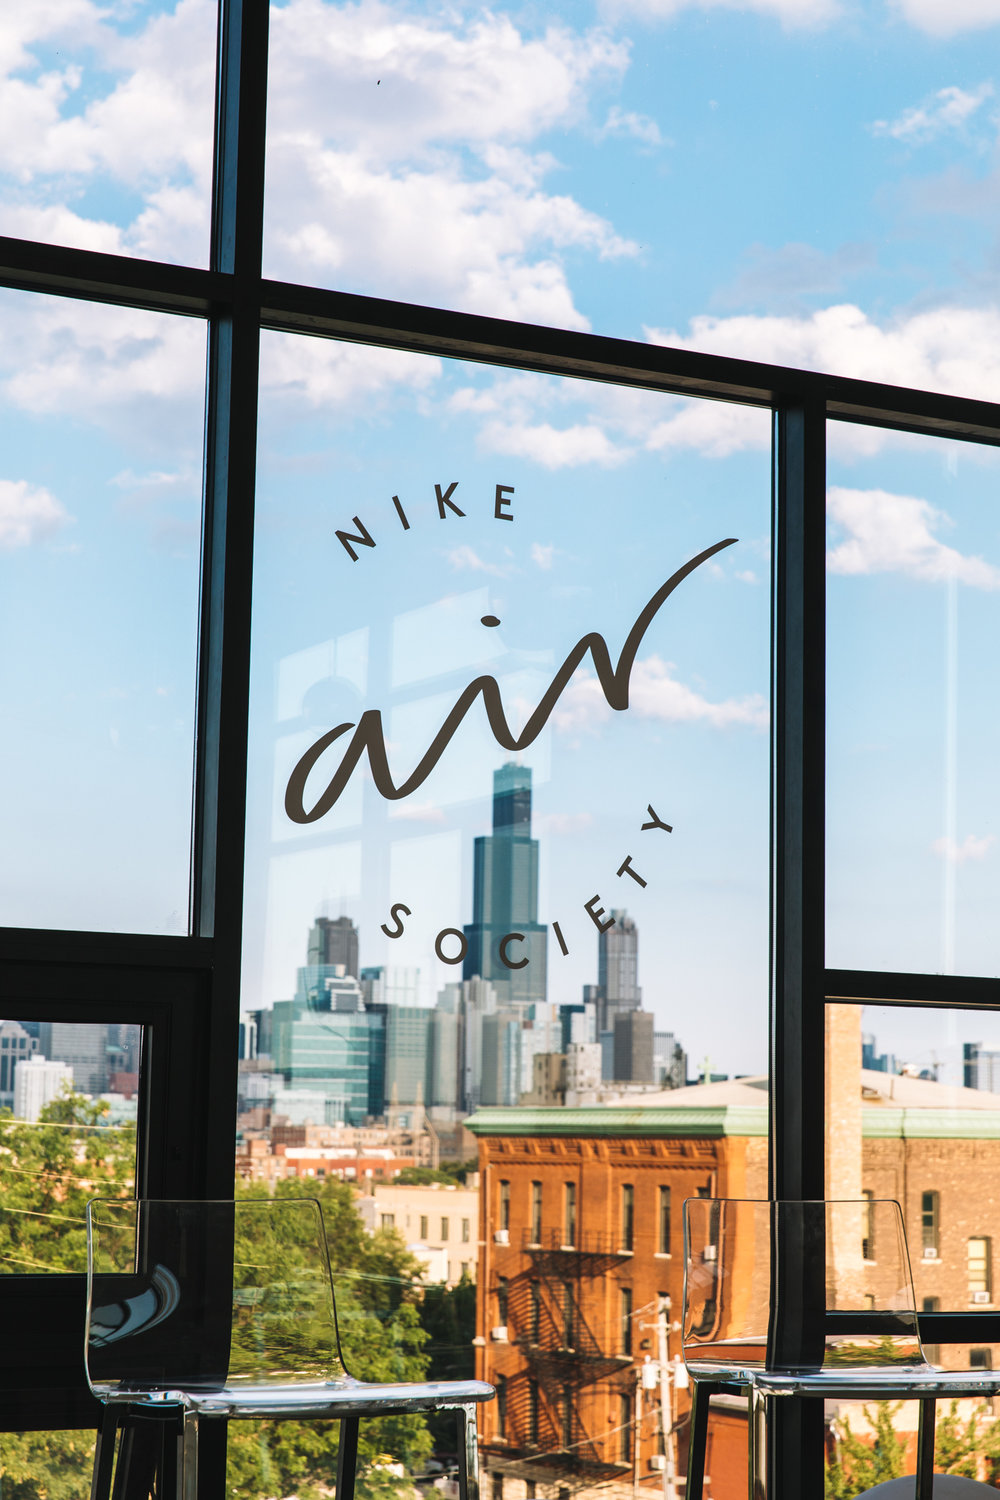 Nike Air Society Chicago; Image: Kyle Goldberg for CNKDaily